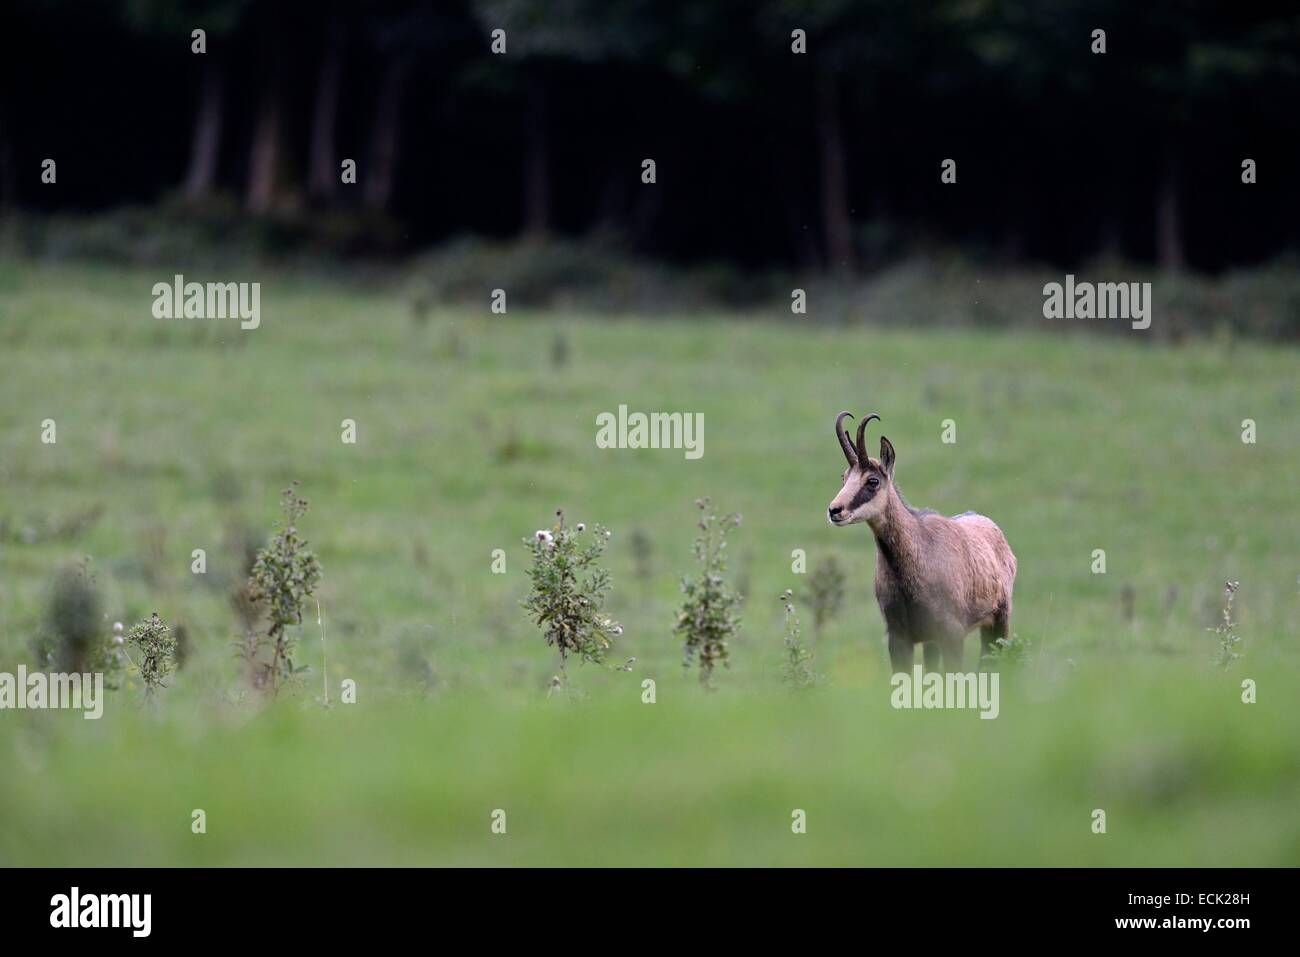 France, Doubs, Liebvillers, Doubs valley, Chamois (Rupicapra Rupicapra) in grassland at the edge of the forest - Stock Image